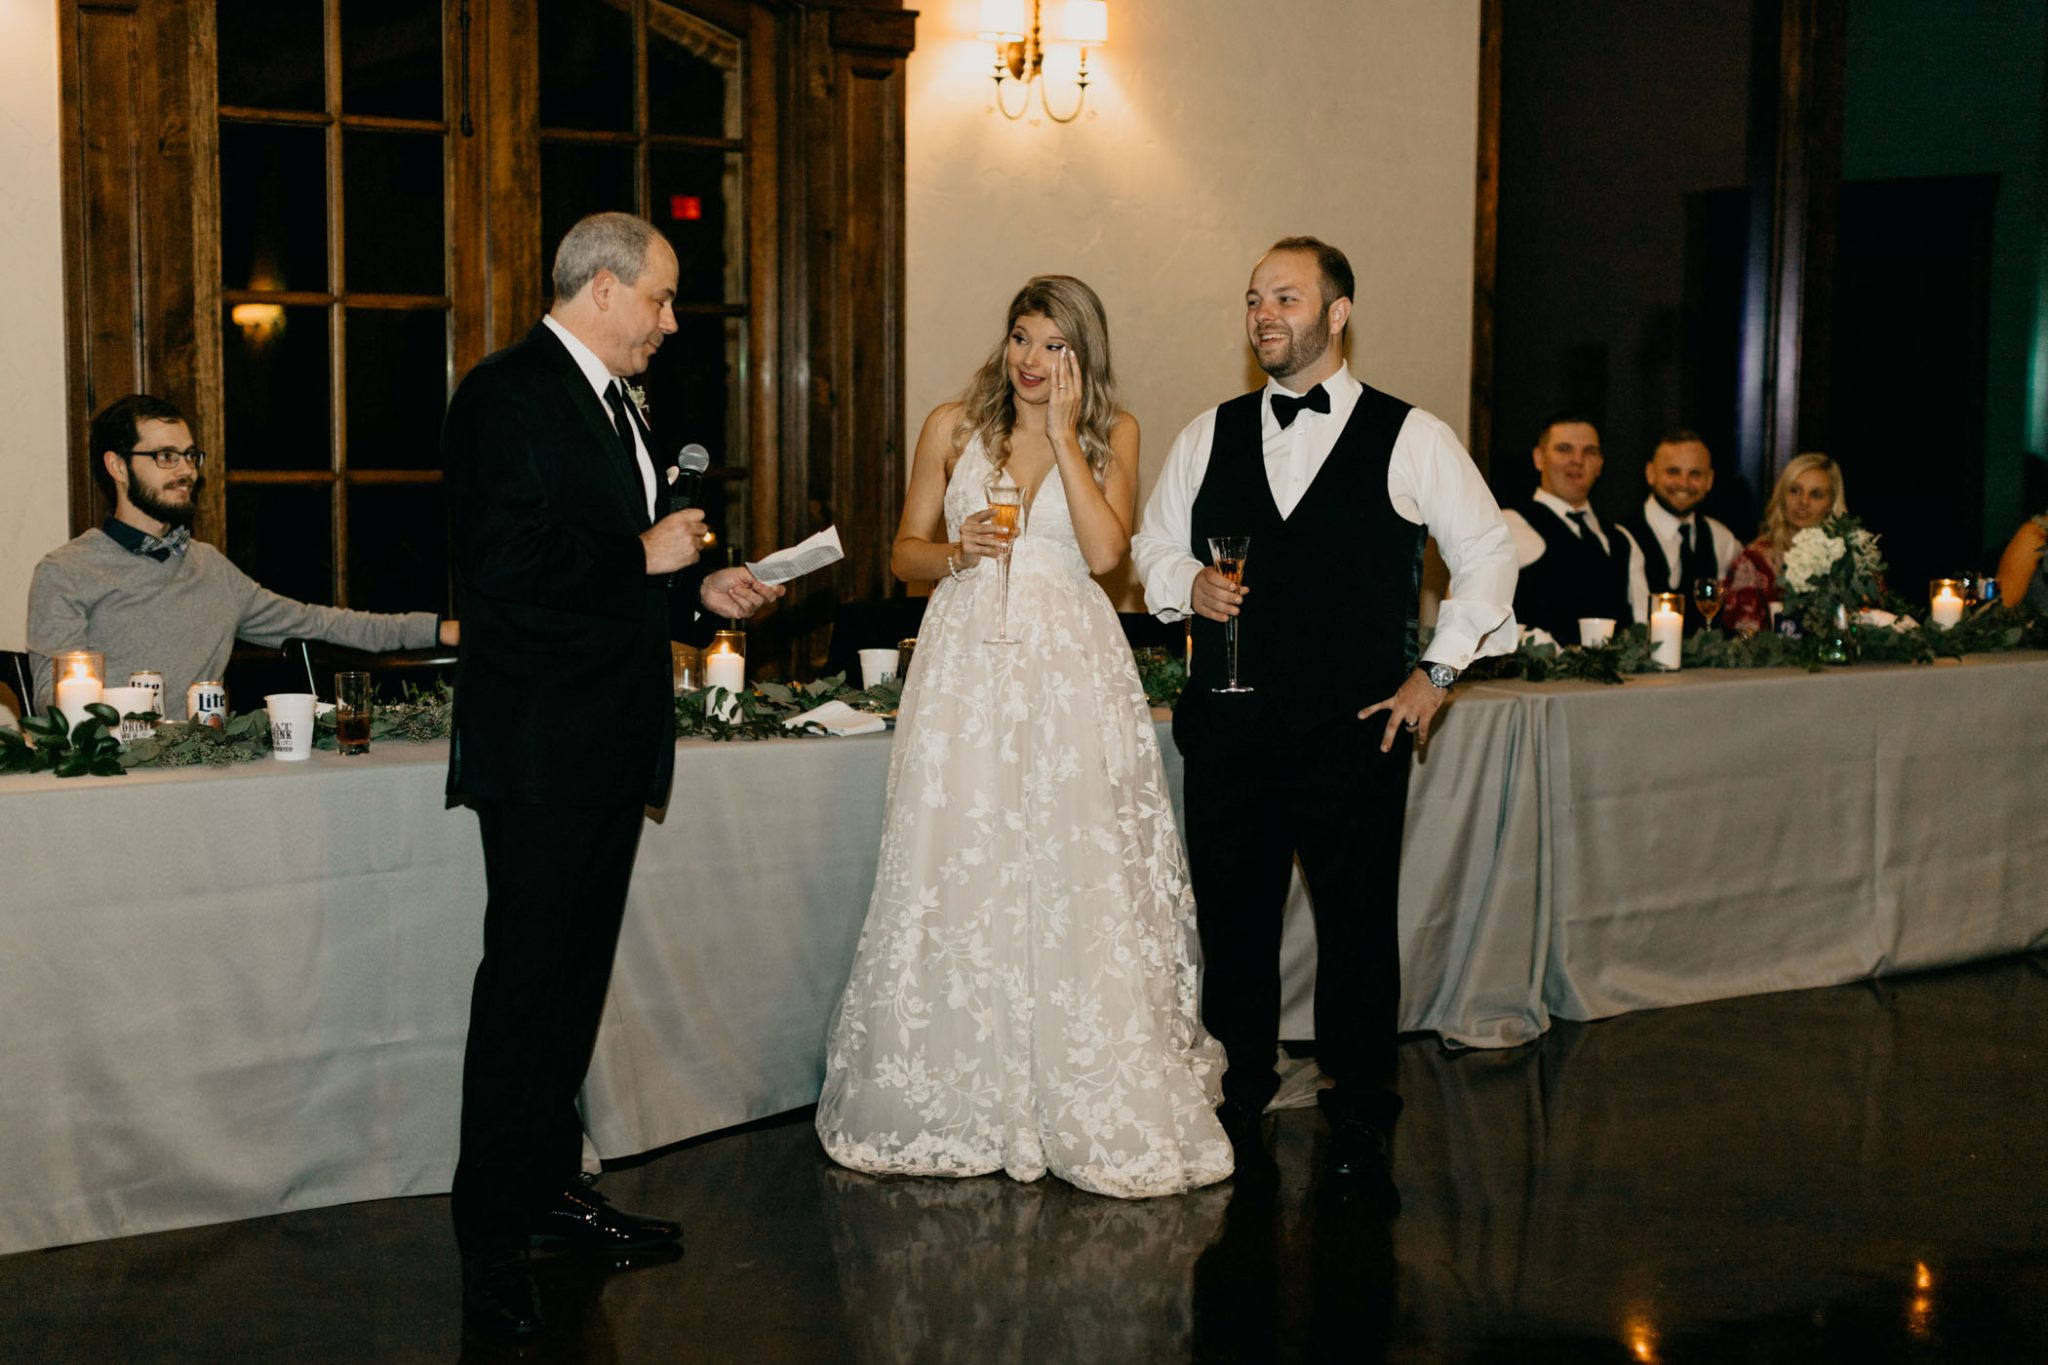 brides dad making a toast and bringing his daughter to tears